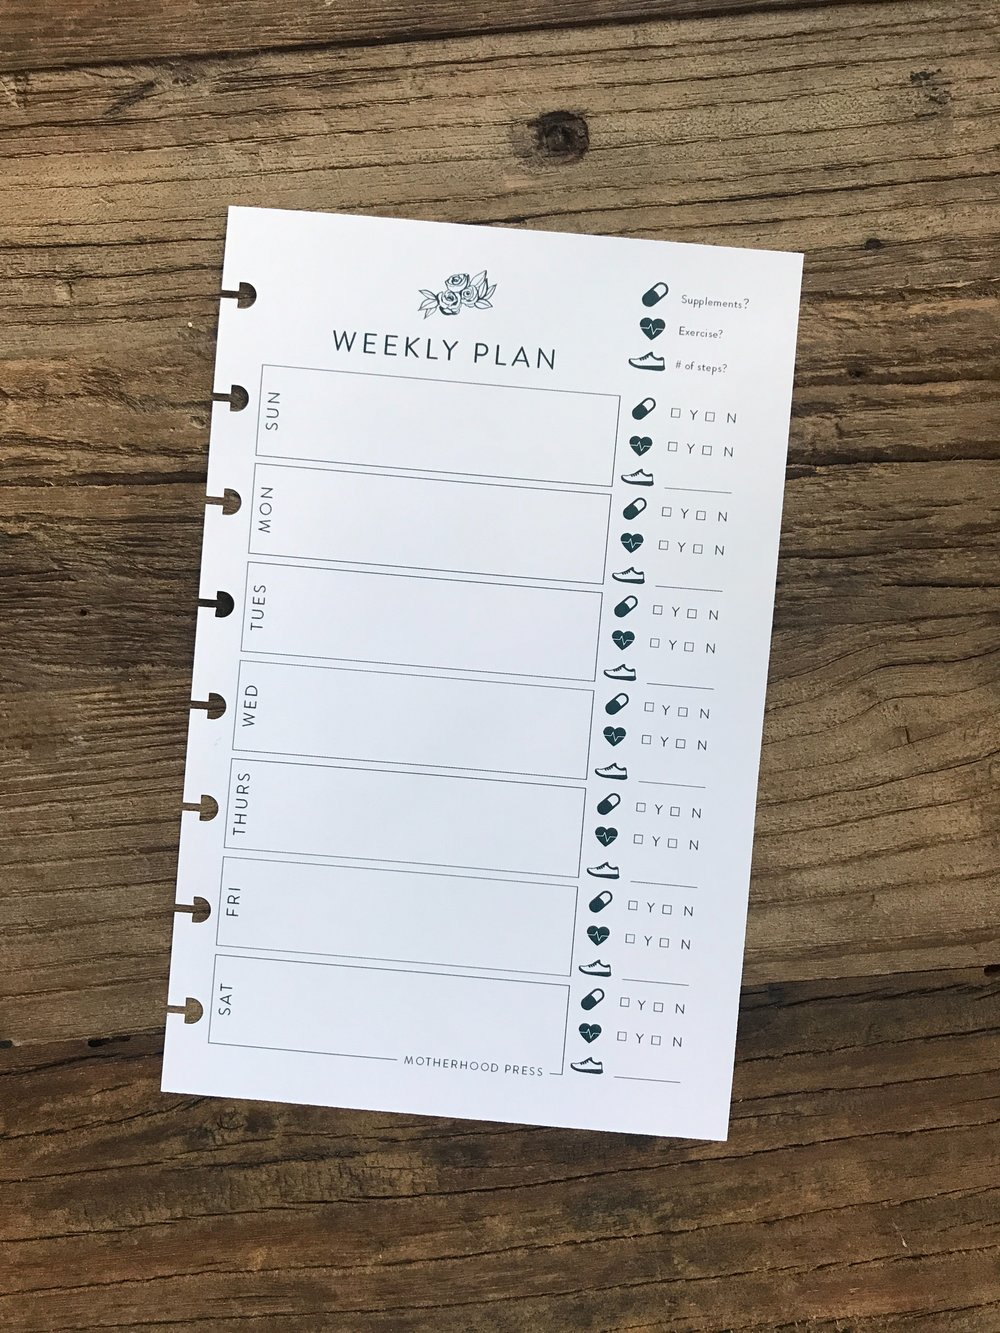 The Weekly Plan